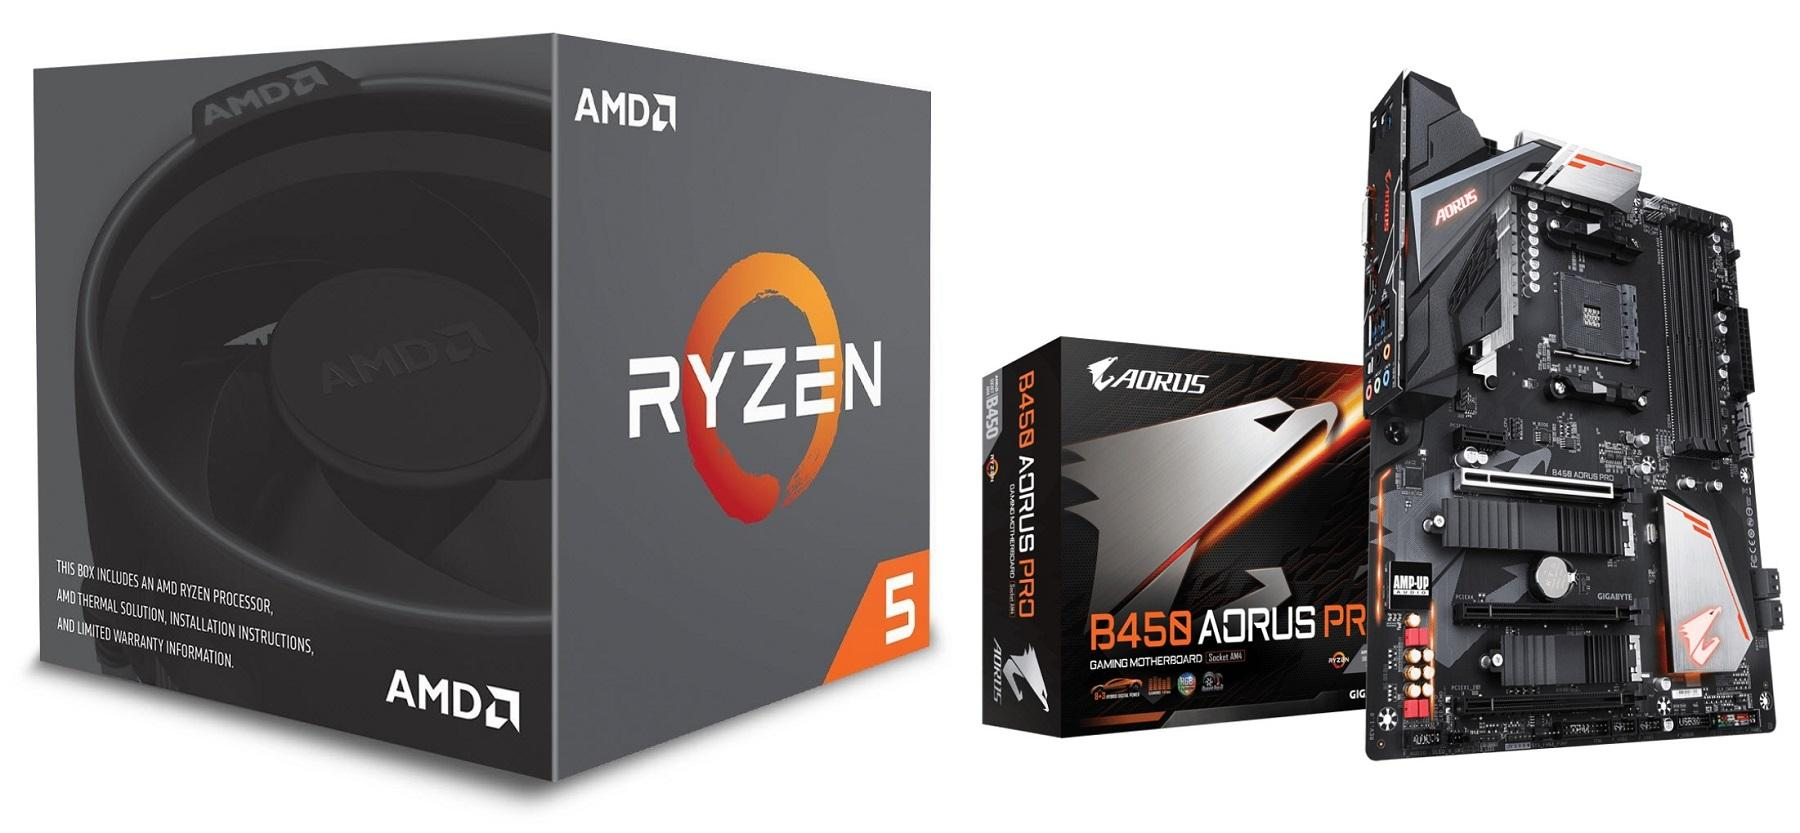 AMD Ryzen 5 2600 Processor with Wraith Stealth Cooler WITH GIGABYTE AMD  B450 AORUS PRO Motherboard